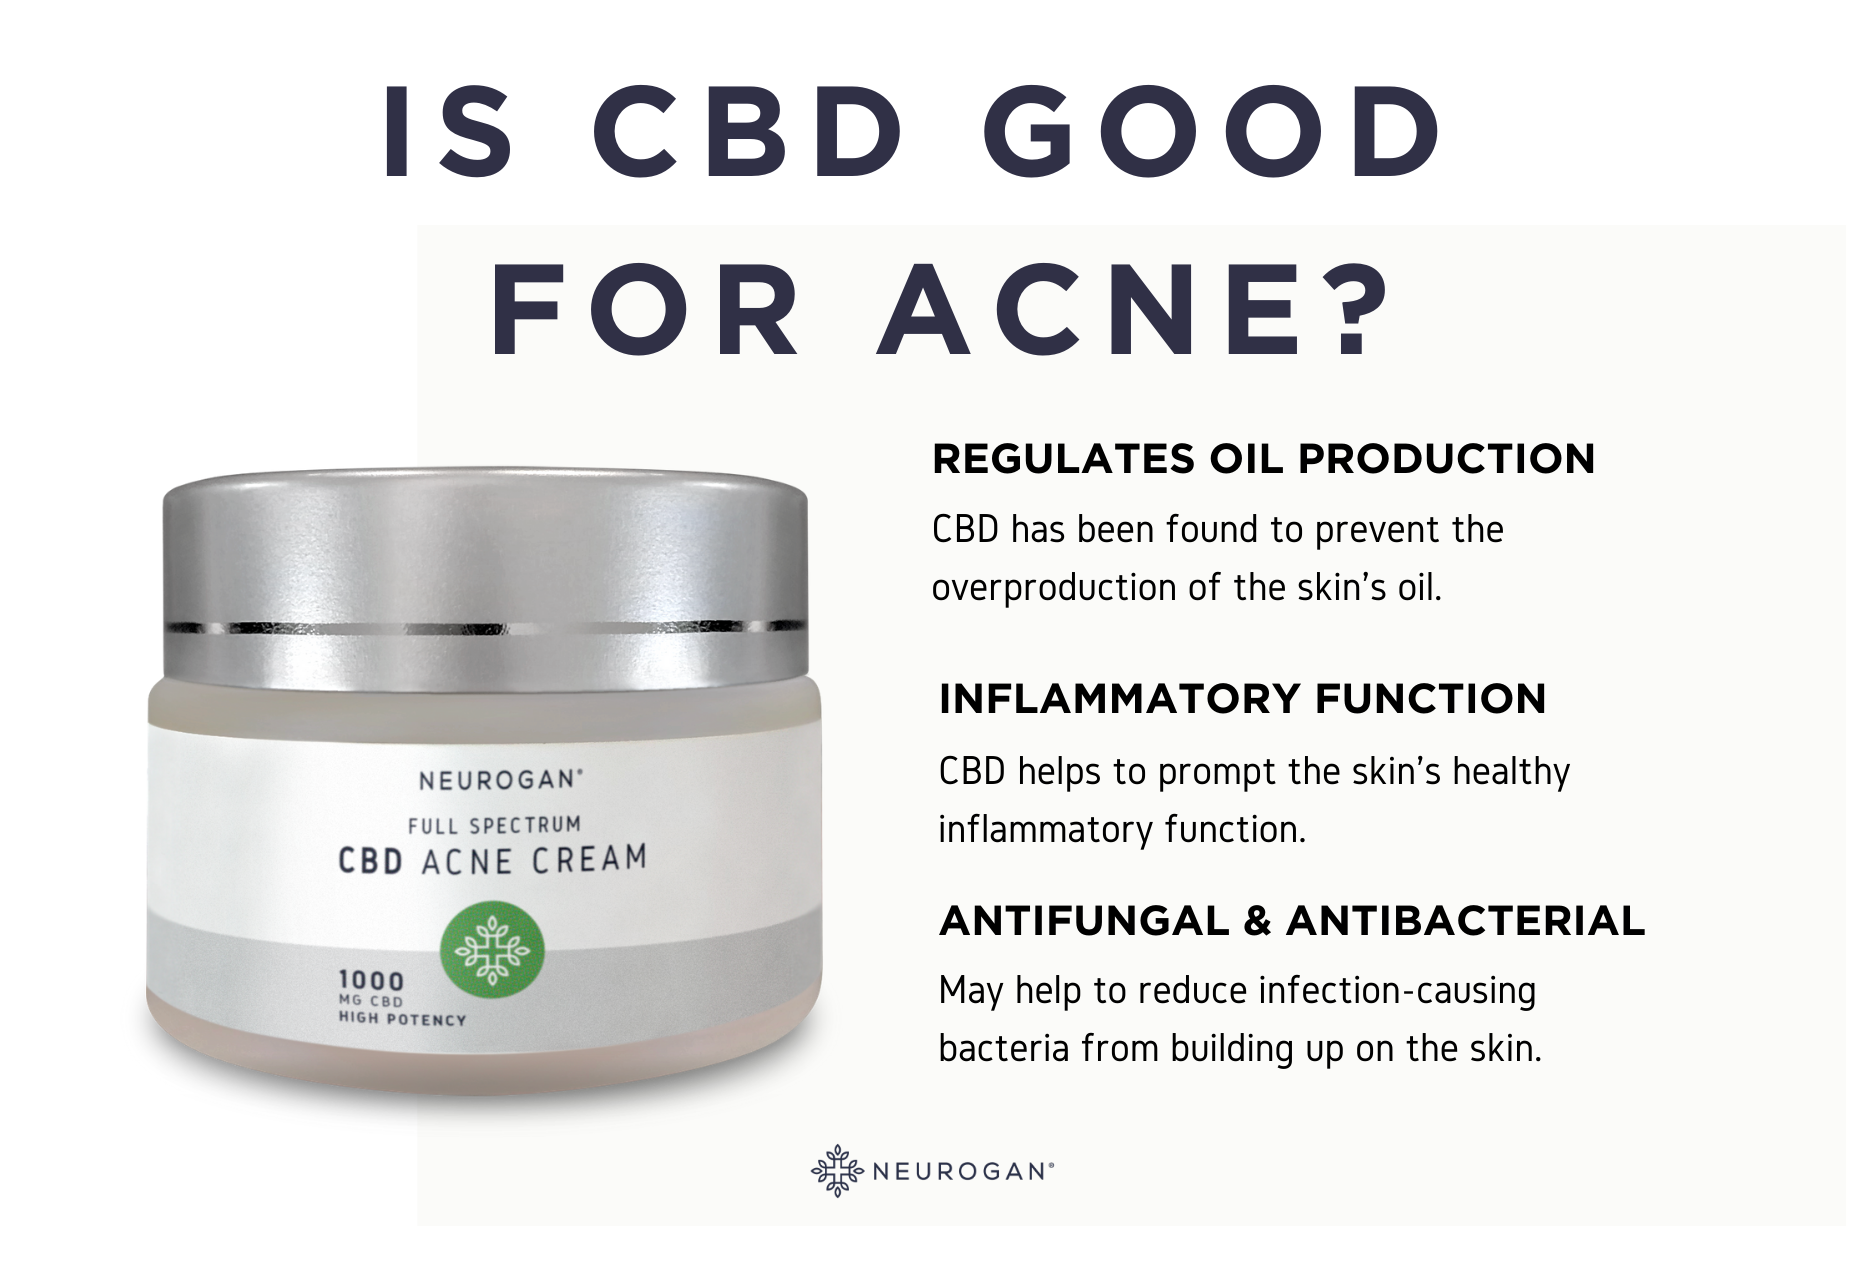 is cbd good for acne infographic